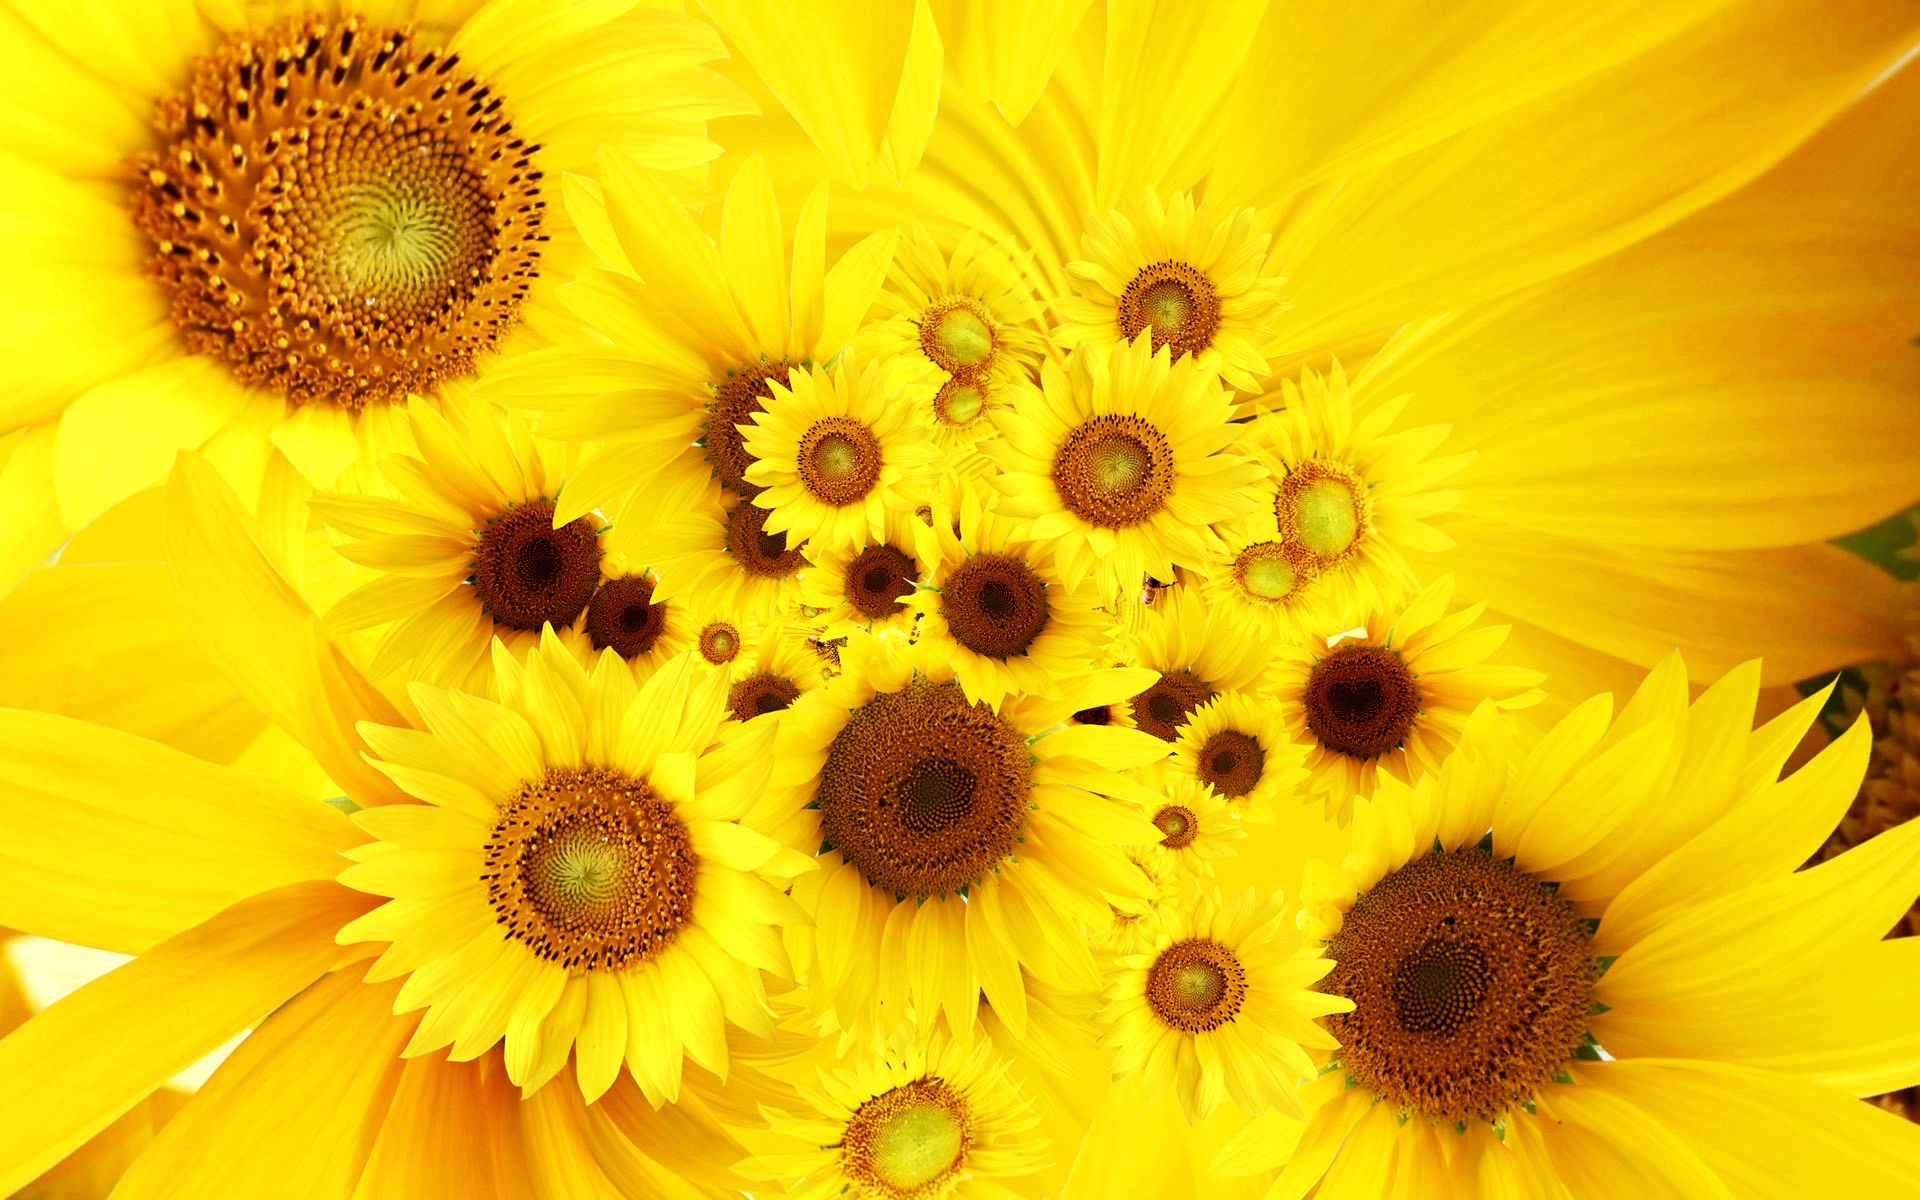 Cool Sunflowers 344.19 Kb